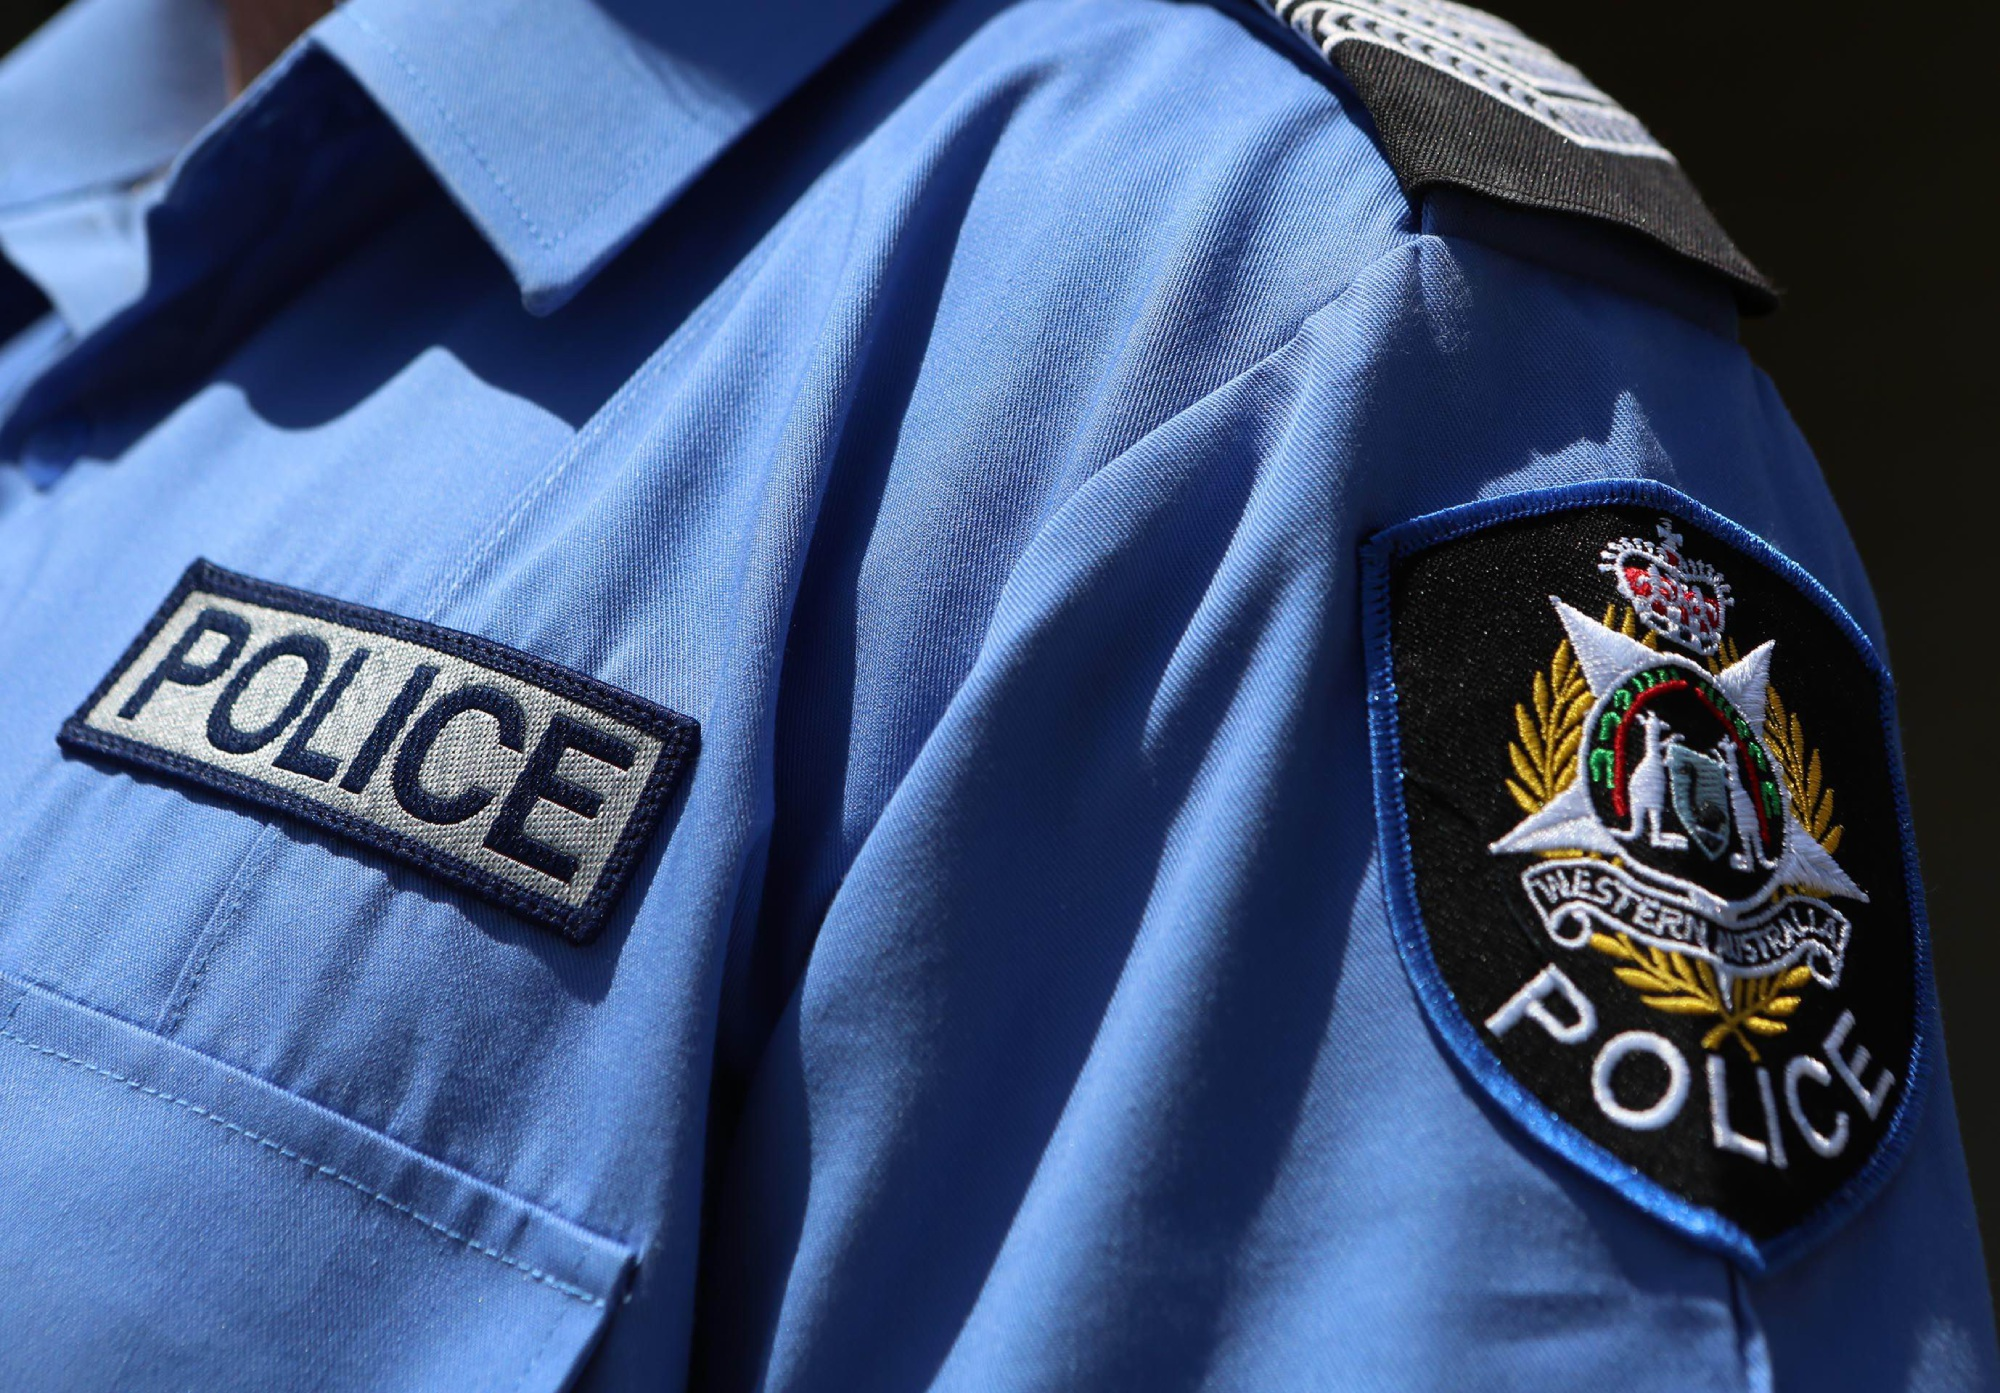 Parmelia boys, aged 14 and 16, charged with crime spree